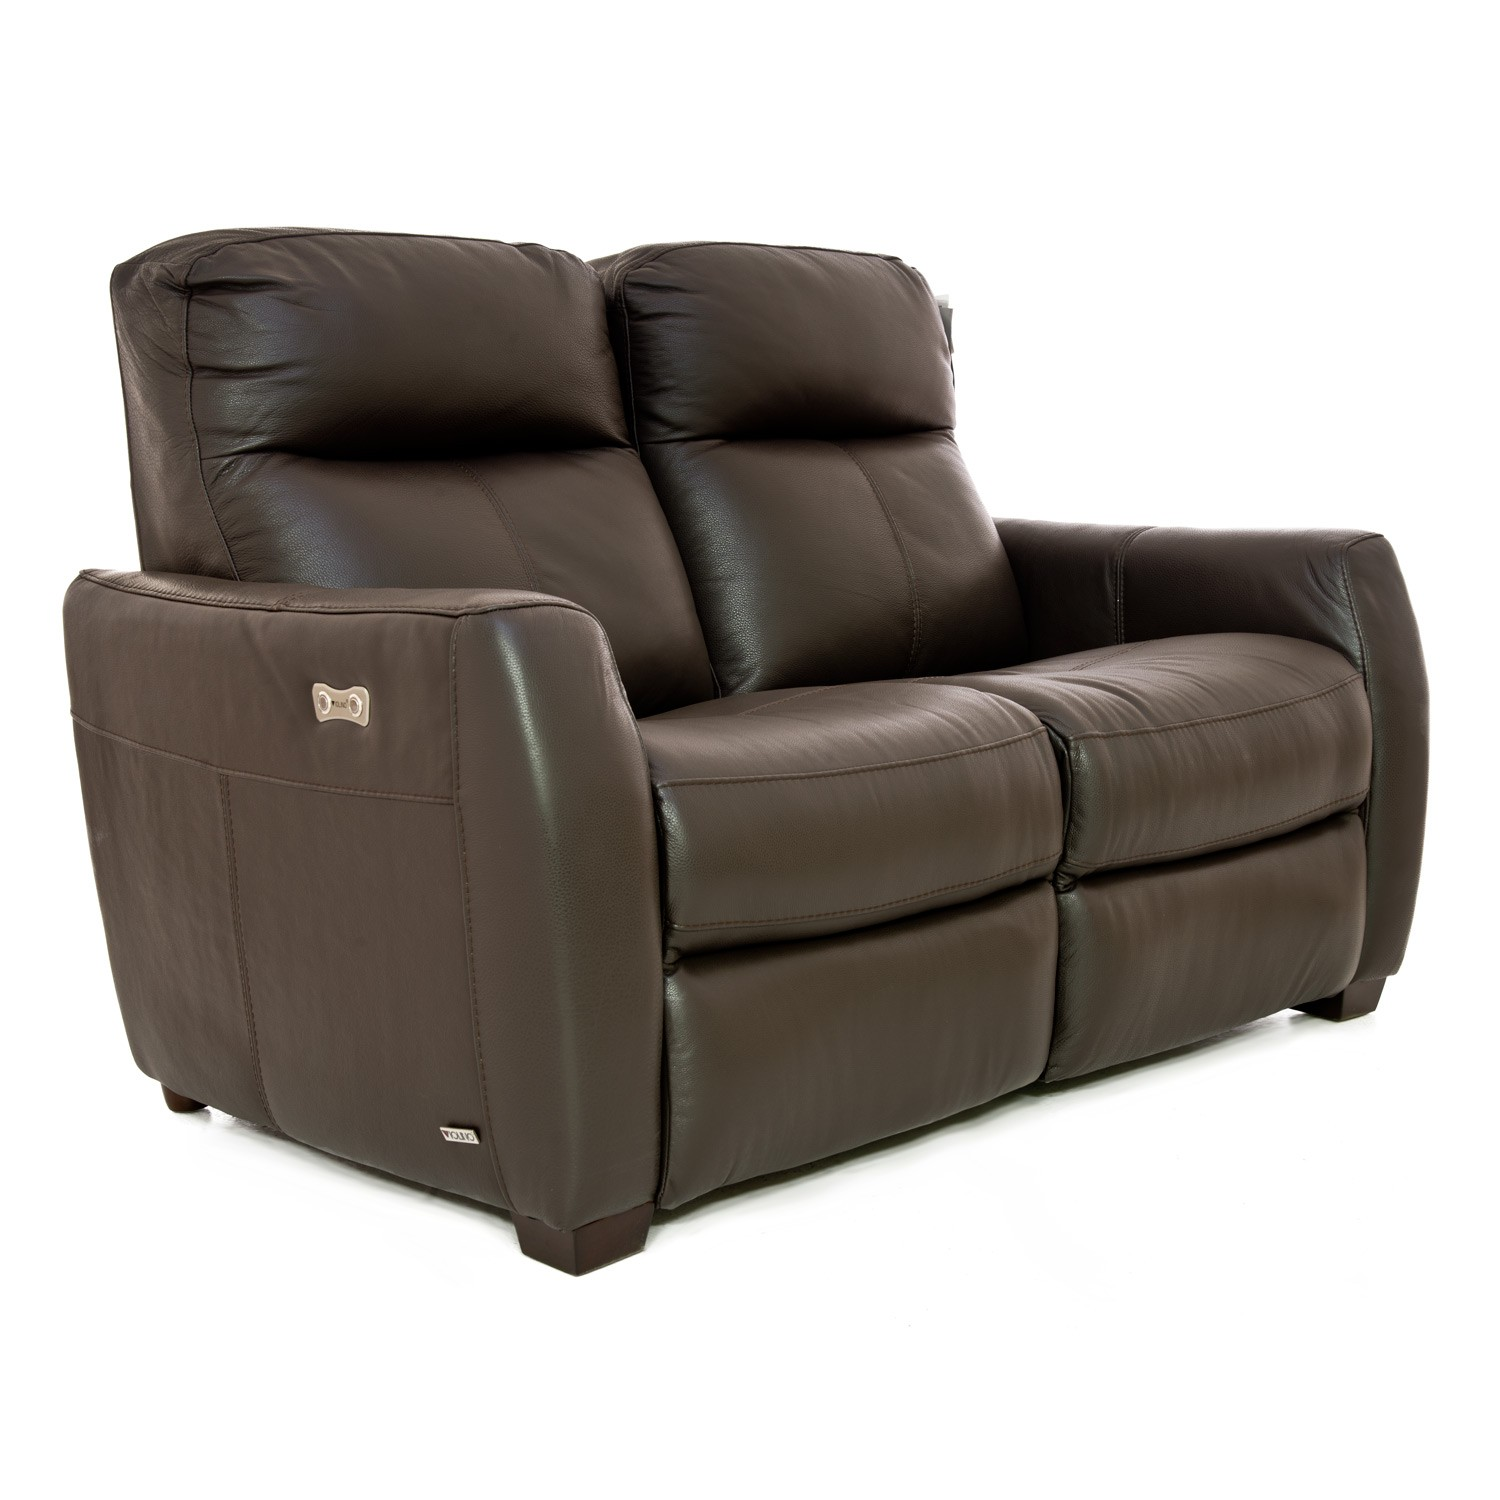 2 seater power recliner sofa large covers cheap fraser two